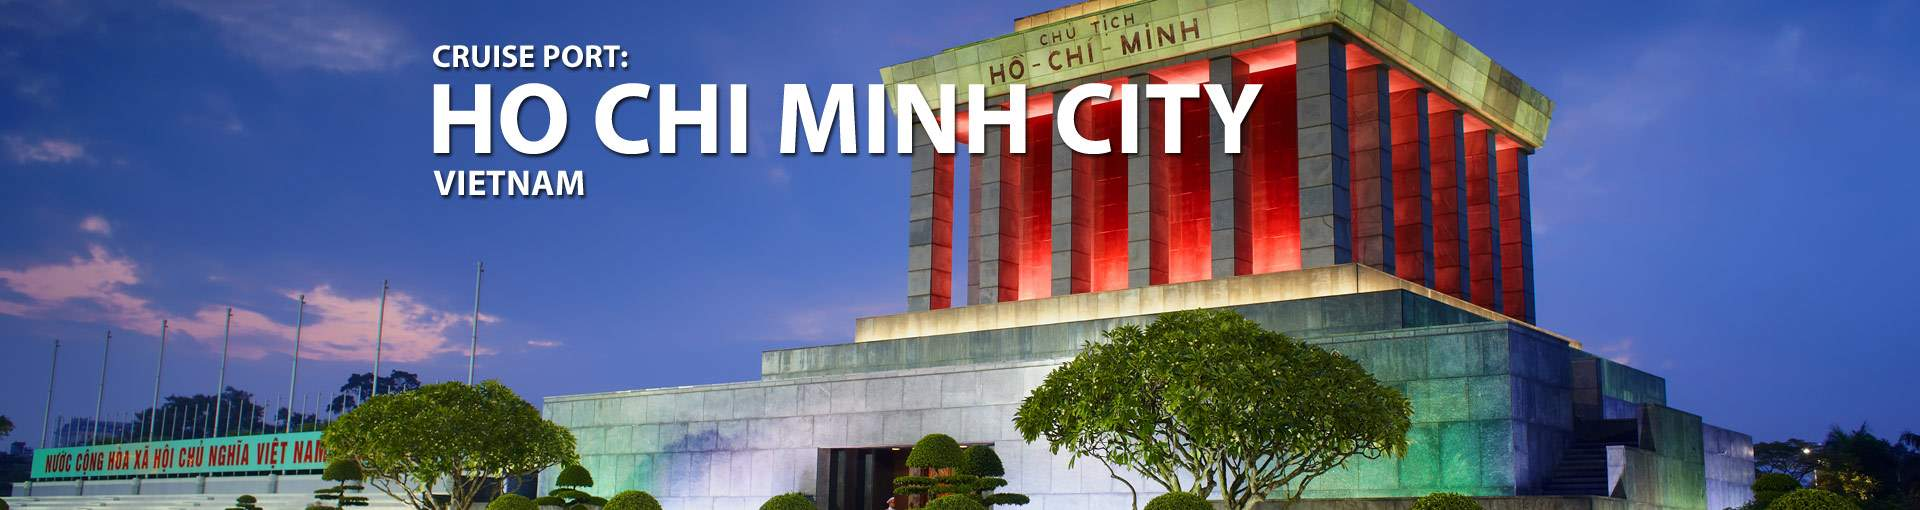 Cruises from Ho Chi Minh City, Saigon, Vietnam